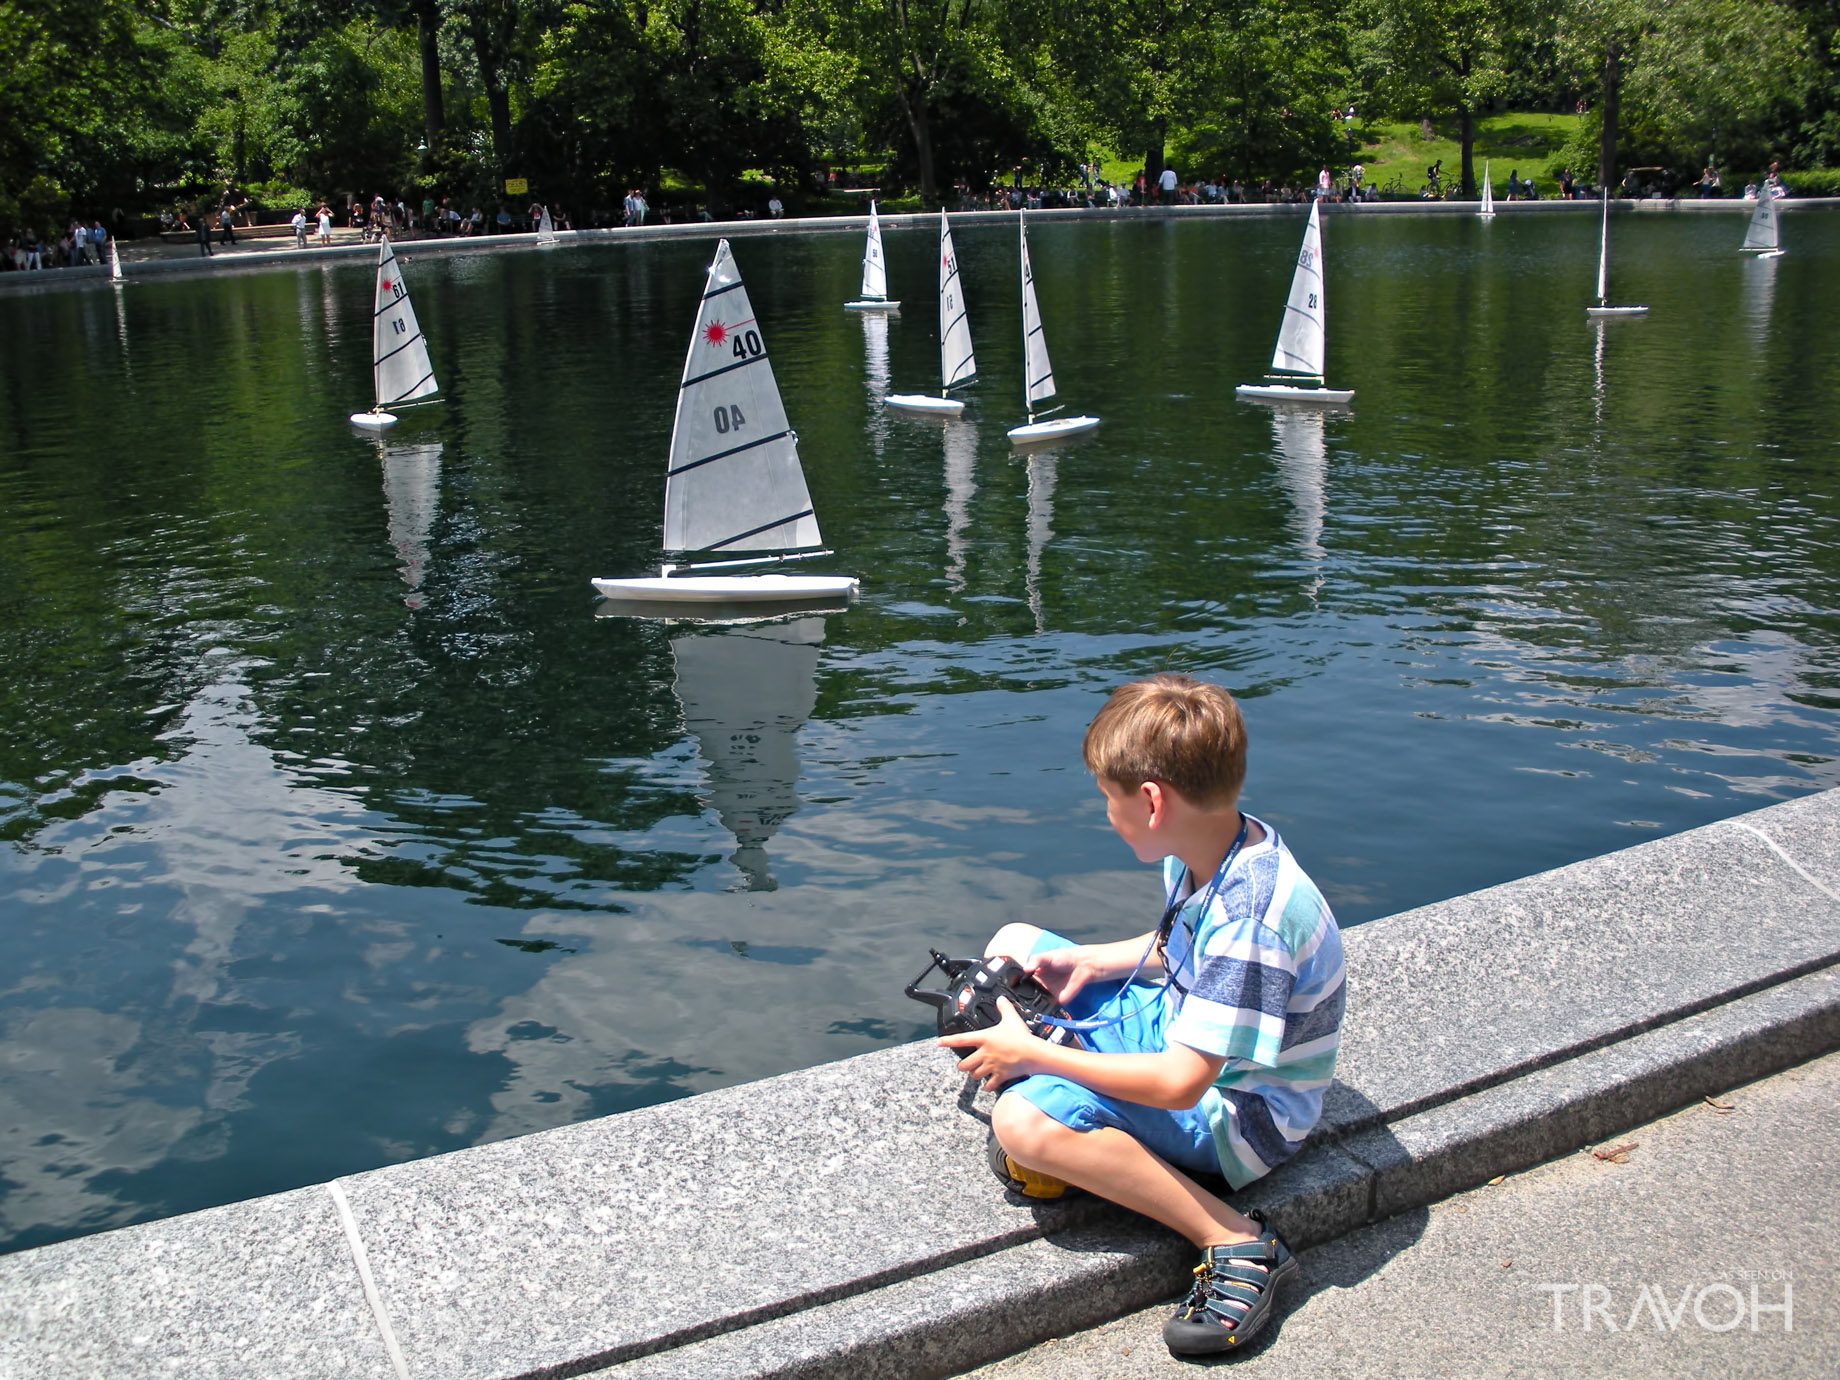 Sail the Park - Central Park Conservatory Water, New York, NY, USA